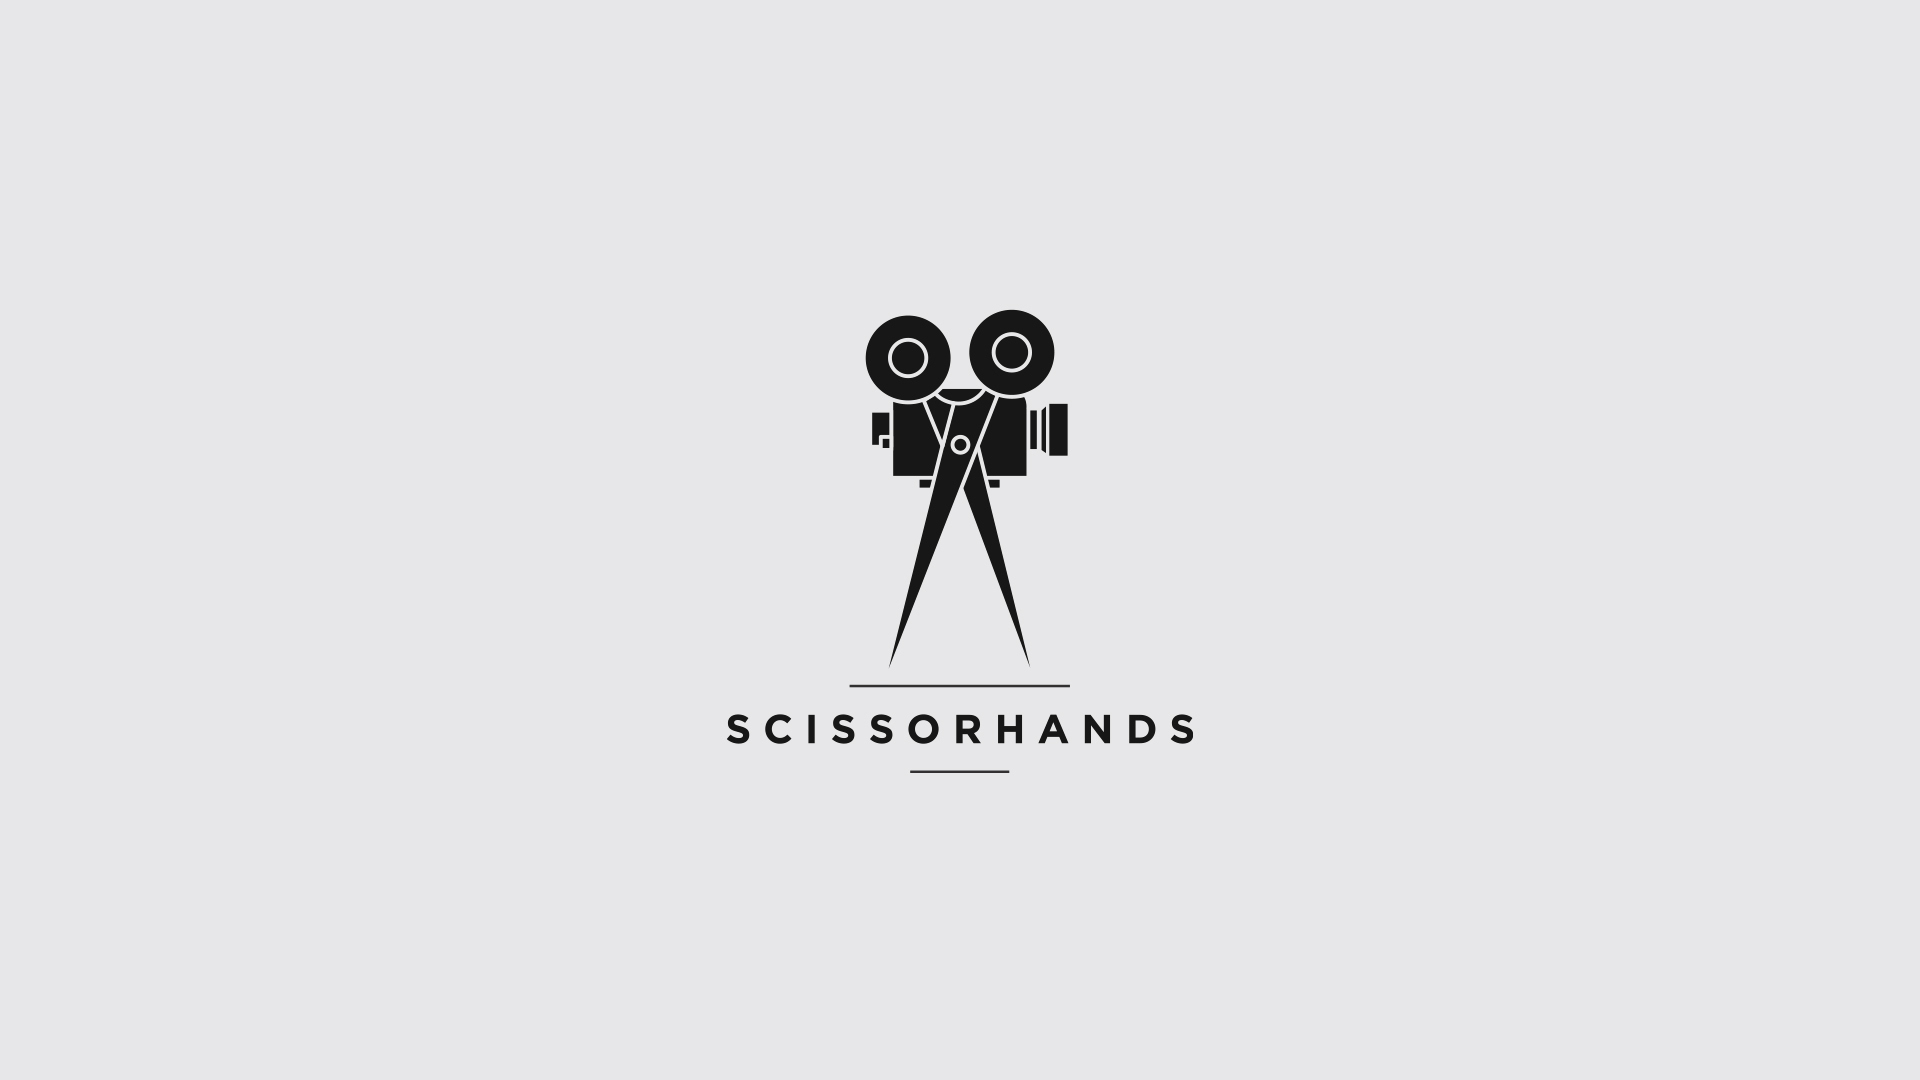 scissorhands logo design